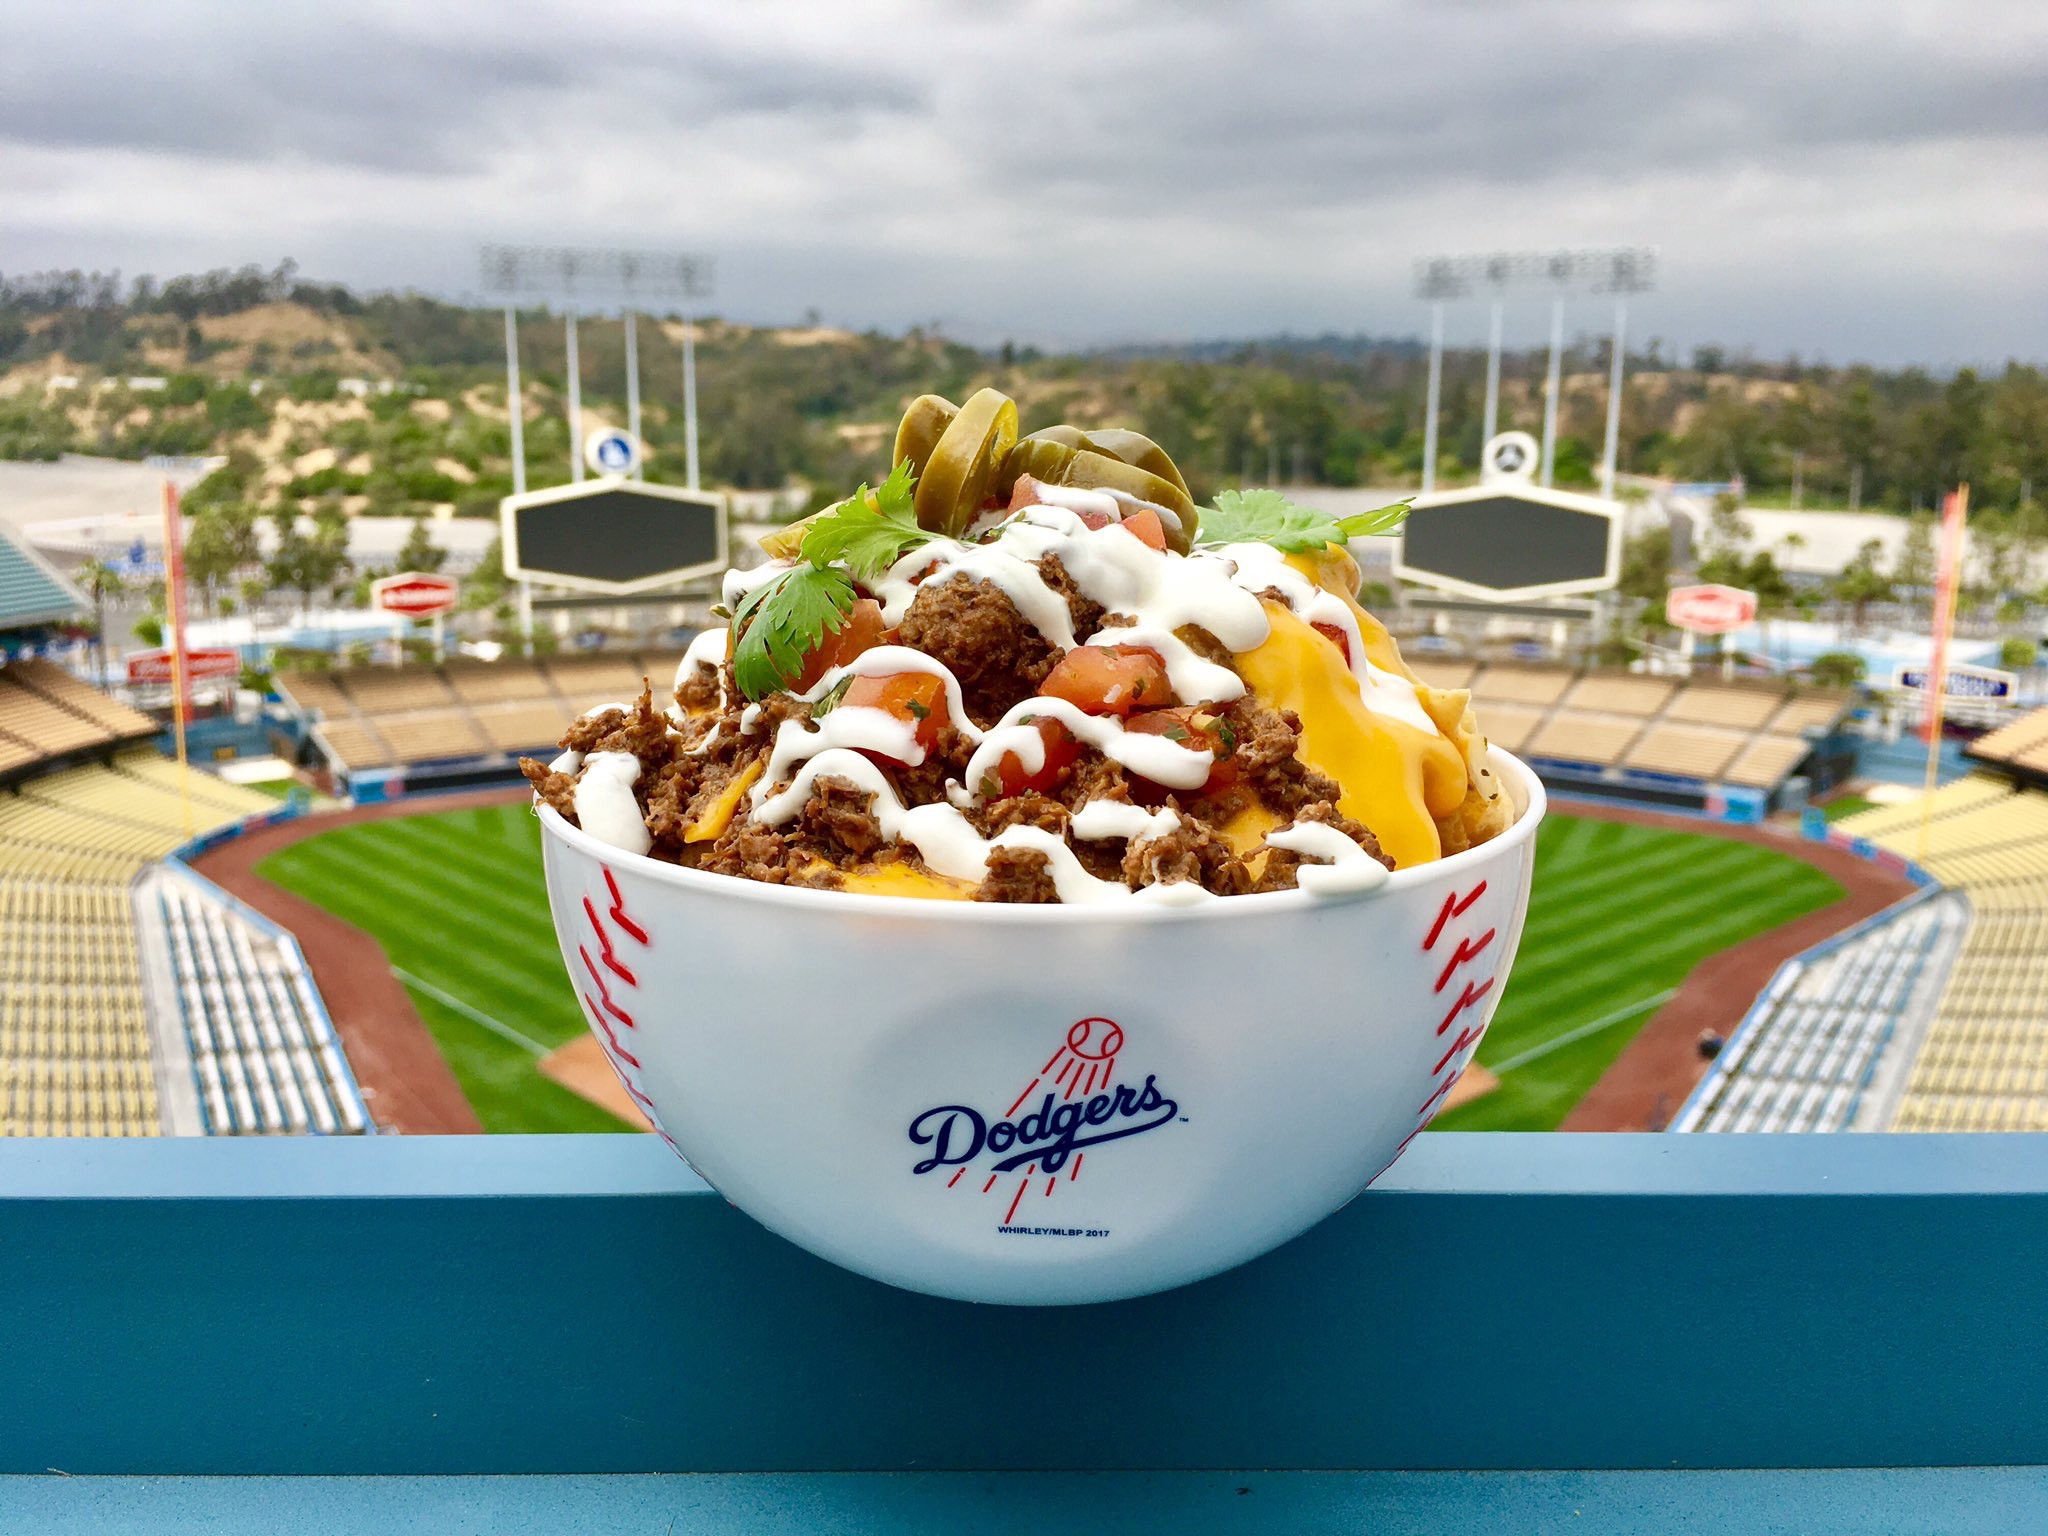 Dodger Stadium NLDS Food Specials - Dodger Insider on dodgers section map, griffith park map, cincinnati reds map, california map, o.co coliseum map, los alamitos race track map, the getty map, target field map, la dodgers map, santa fe dam recreation area map, bronson canyon map, angel stadium map, durham bulls athletic park map, suntrust park map, sports authority field at mile high map, staples center map, los angeles map, wrigley field map, citi field map, marlins ballpark map,